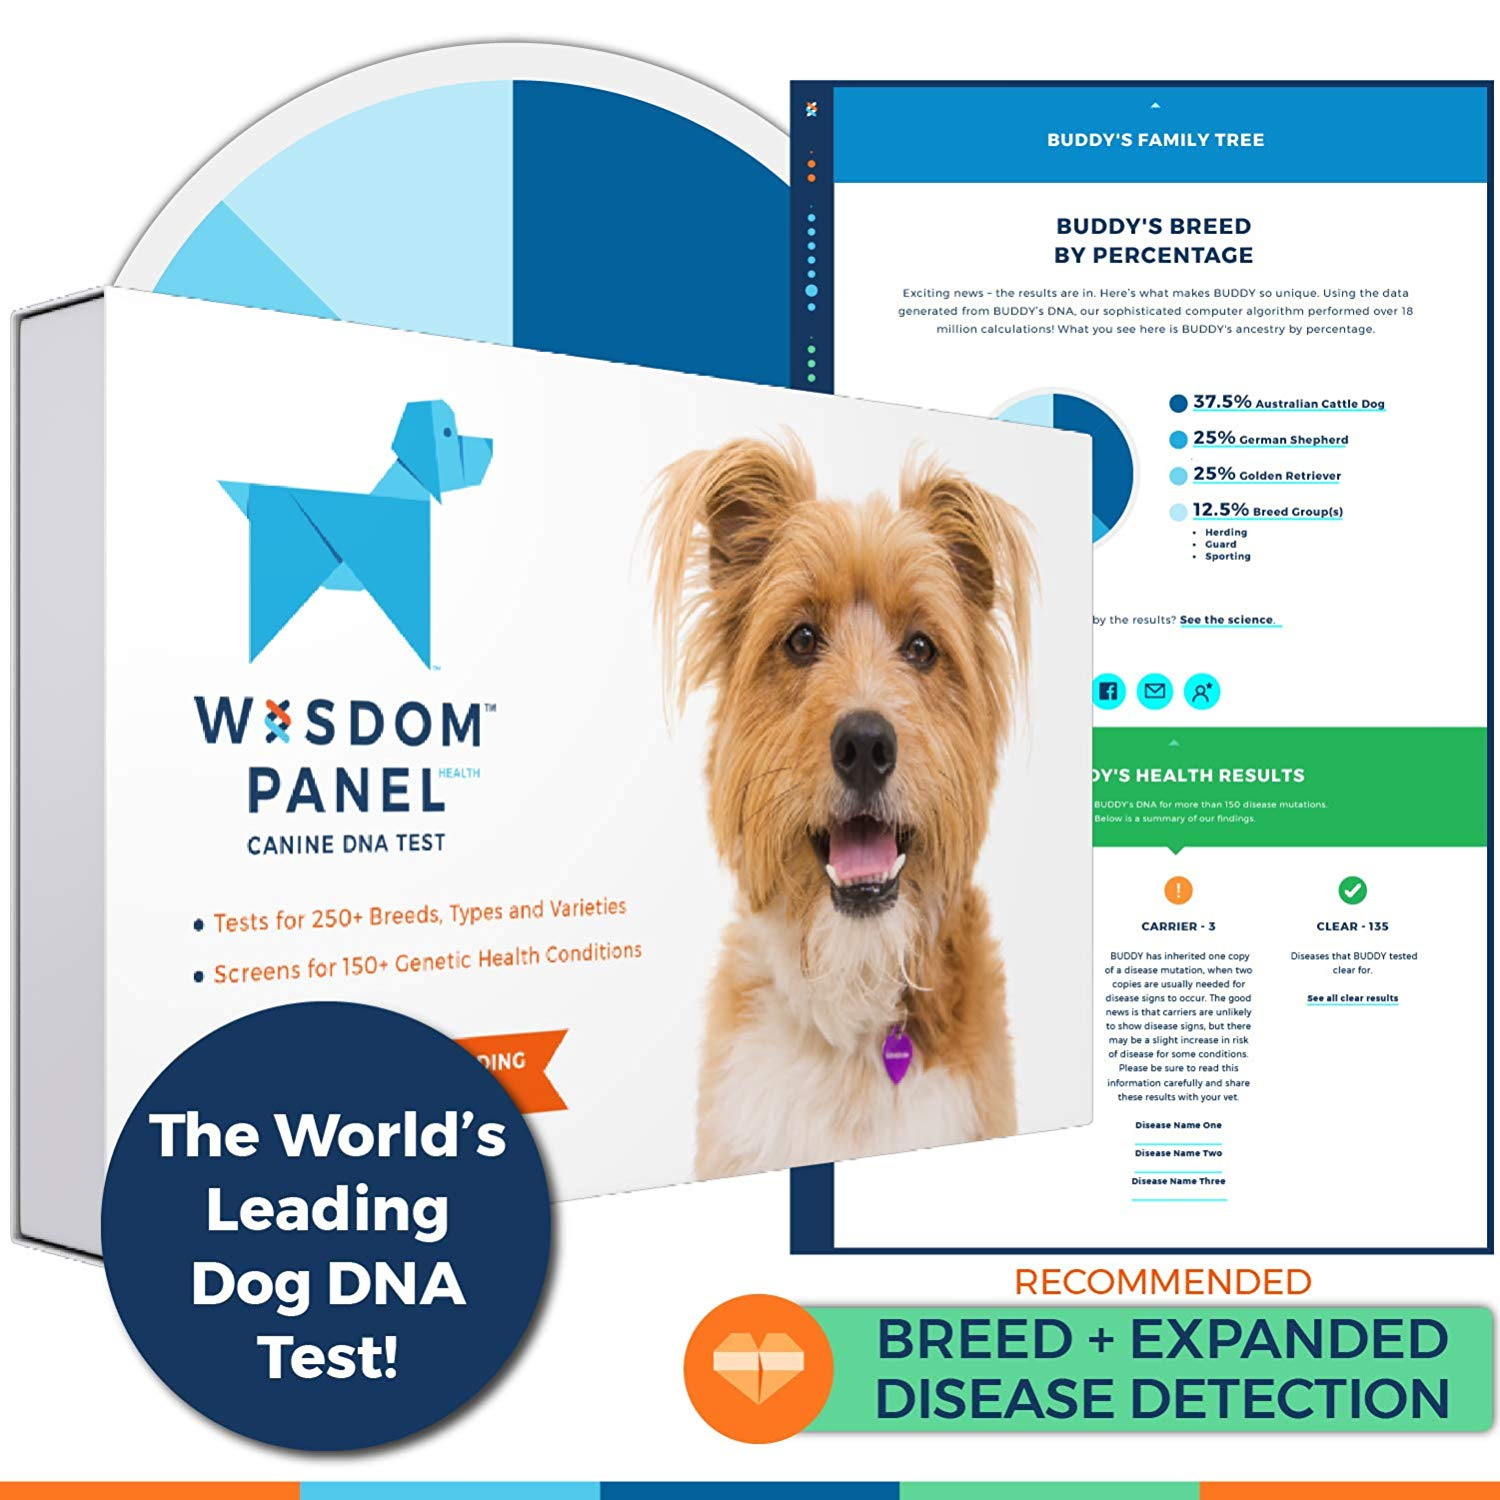 Canine DNA Test - Wisdom Panel